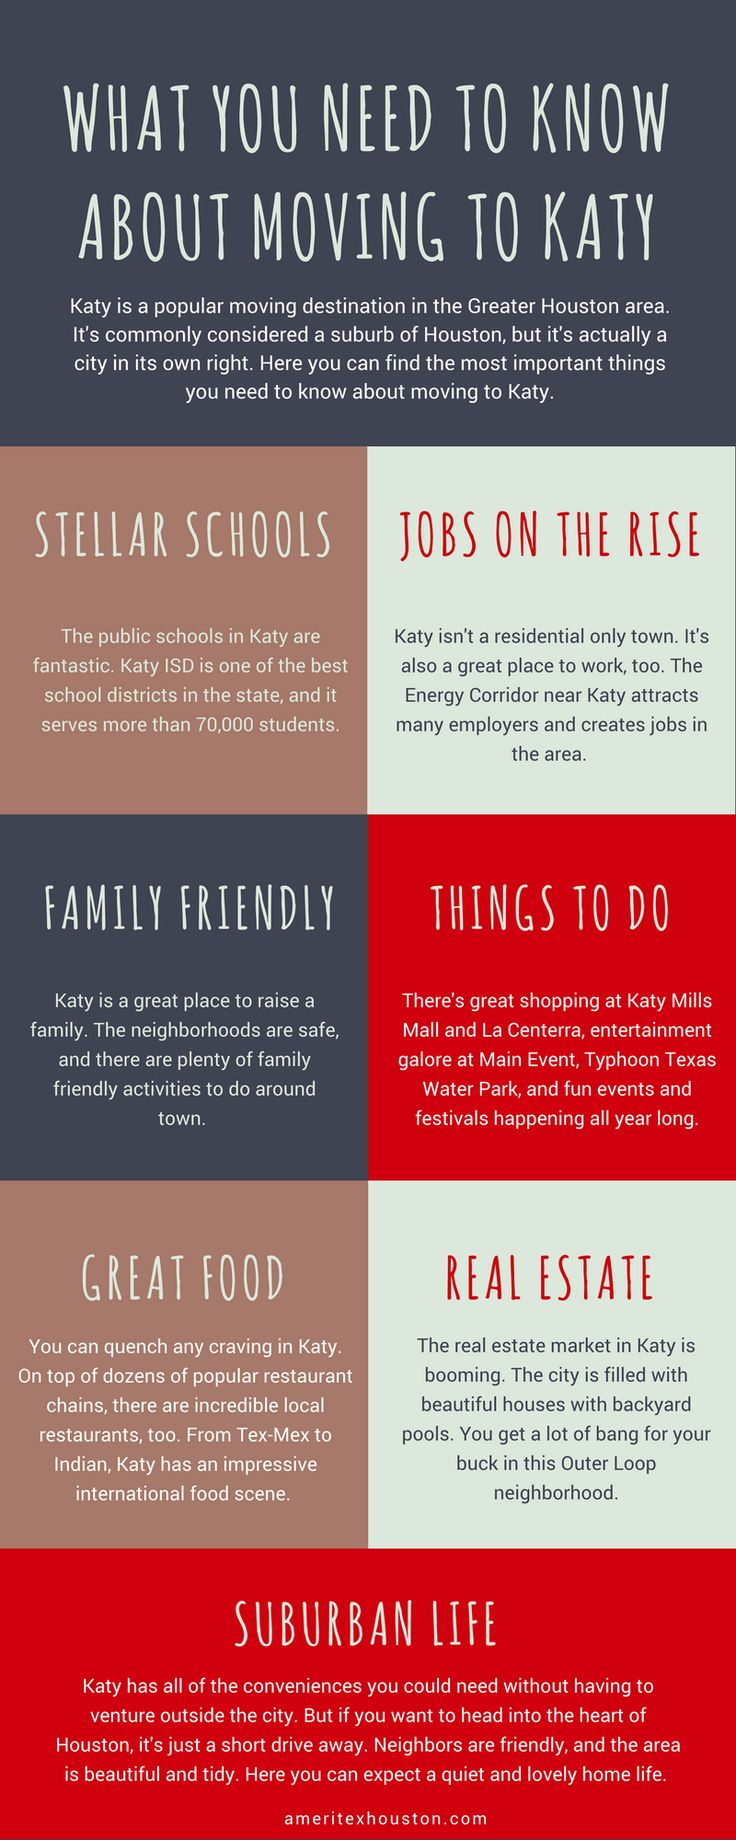 Katy, Texas is an awesome place to live! But before you make the move — read this.  #katy #texas #tx #moving #movers #katymovers #suburbs #houston #houstonmovers